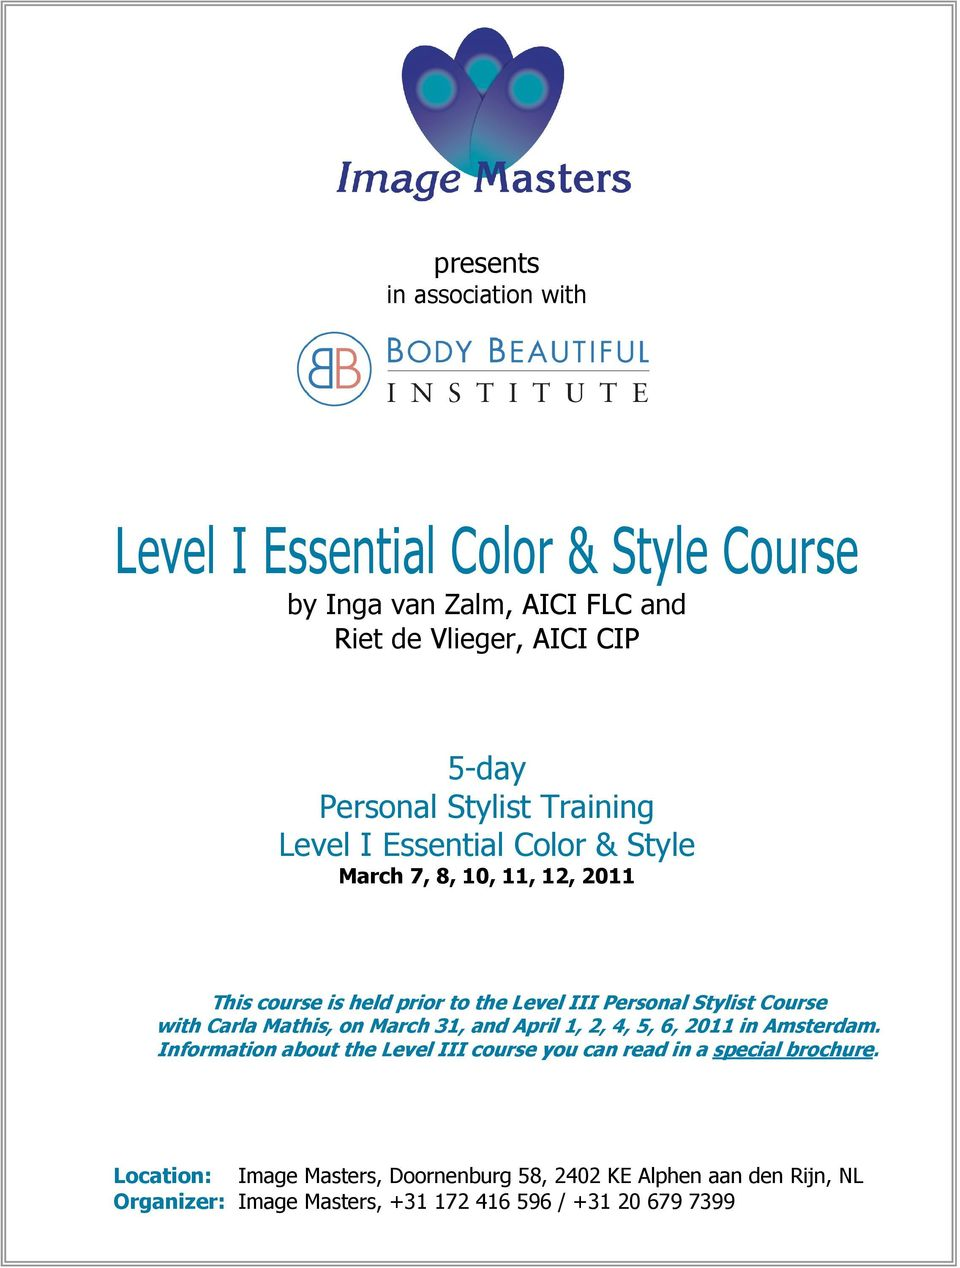 Course with Carla Mathis, on March 31, and April 1, 2, 4, 5, 6, 2011 in Amsterdam.